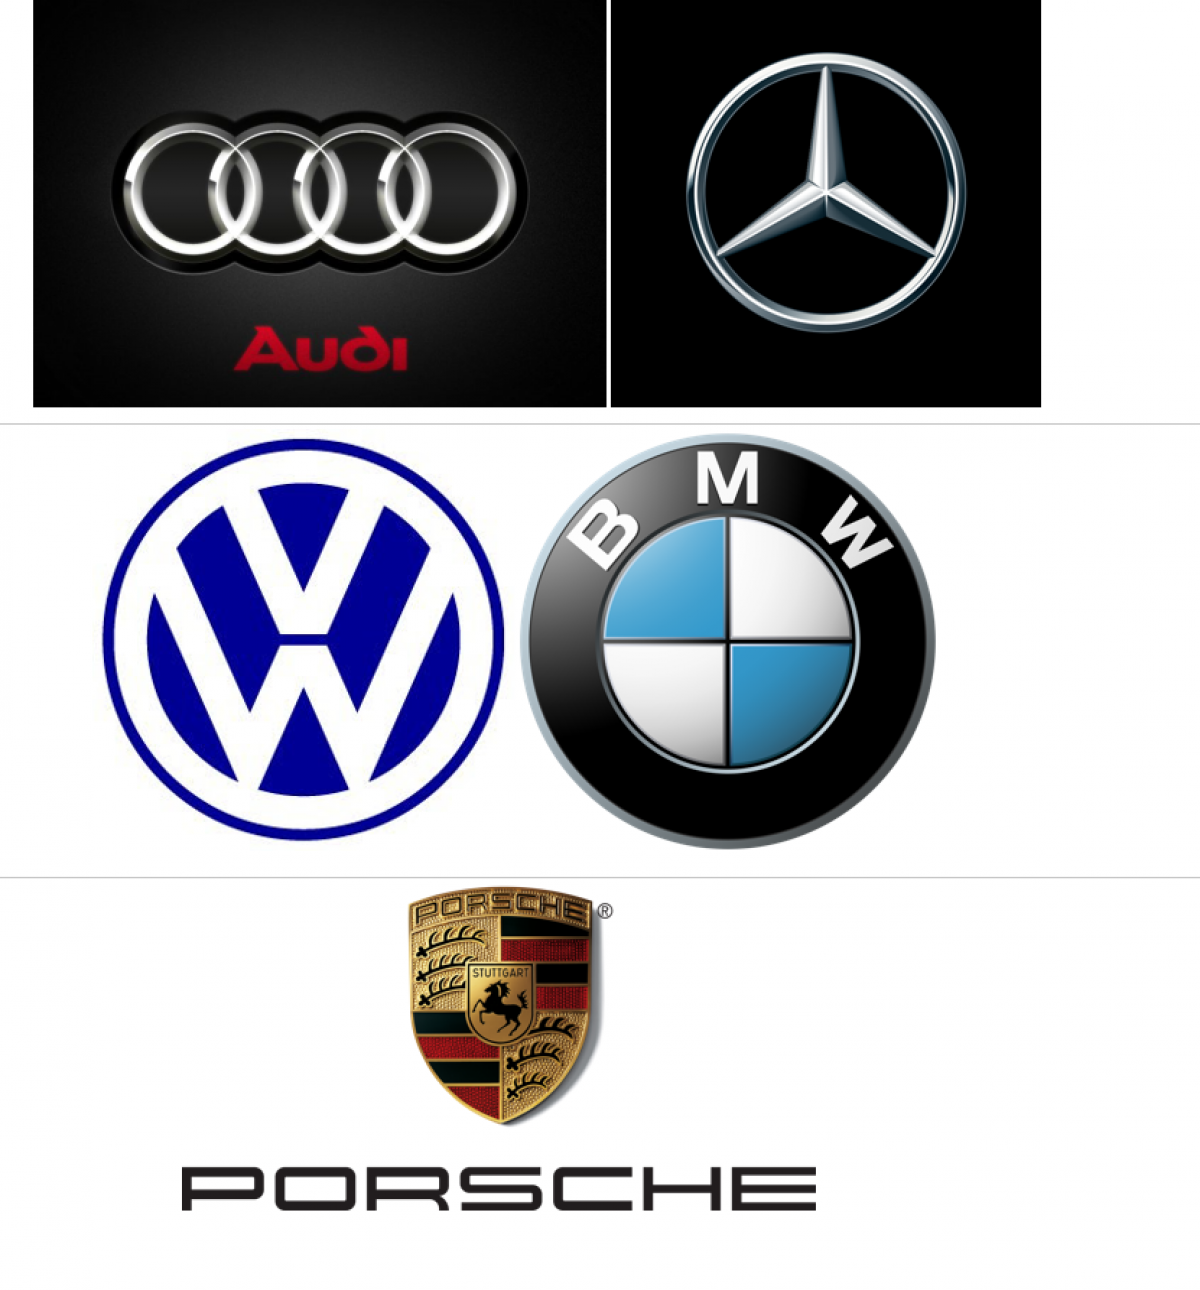 Brand logos of Audi, Daimler, VW, BMW and Porsche.